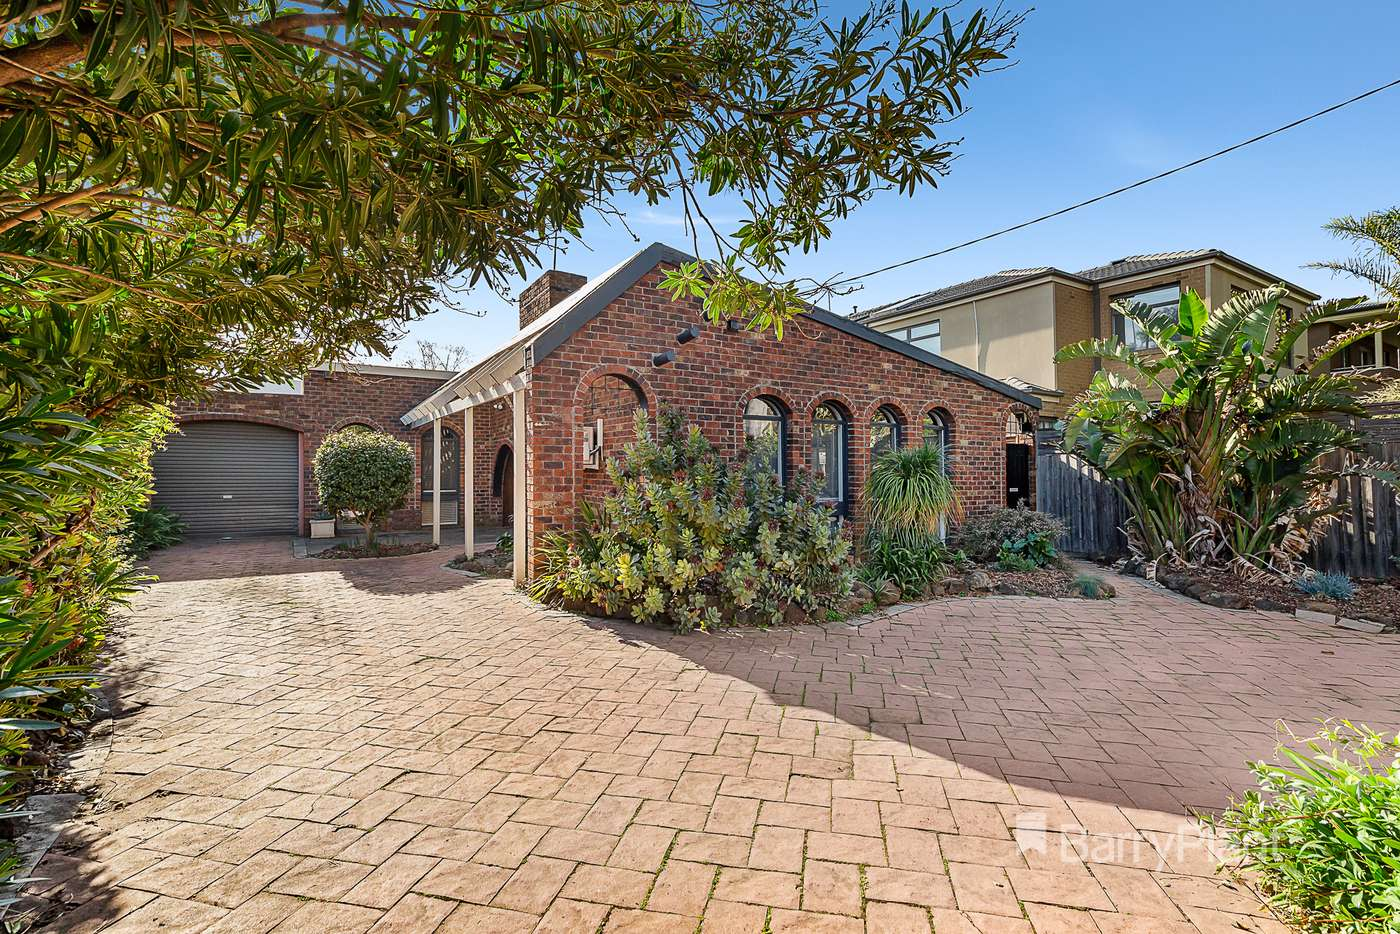 Main view of Homely house listing, 402 Balcombe Road, Beaumaris VIC 3193